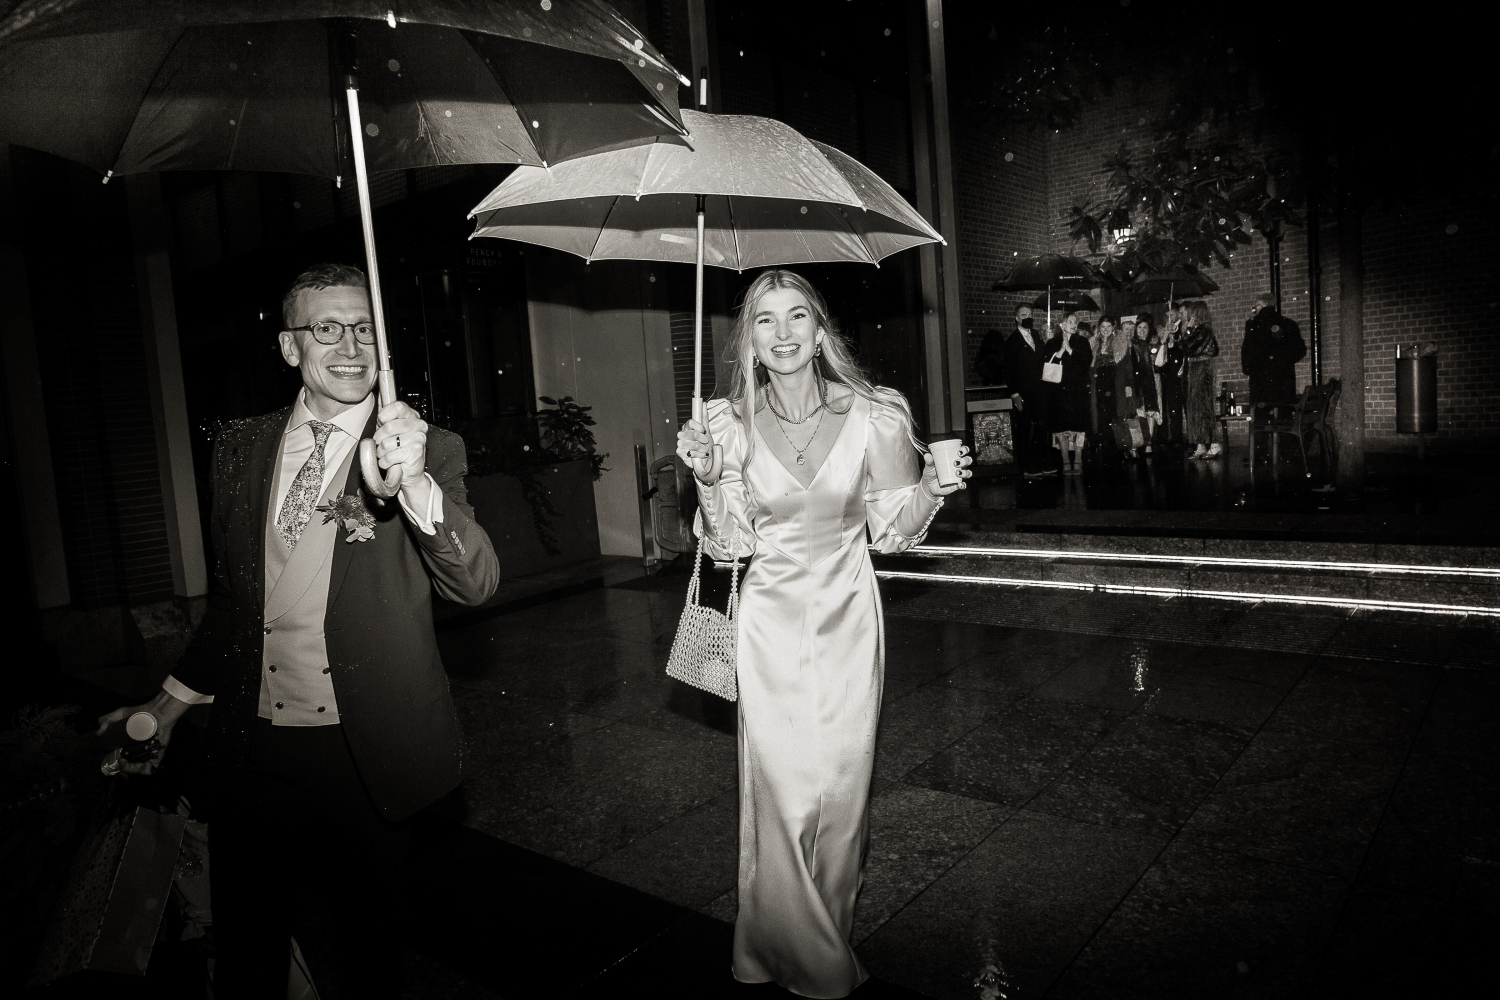 Bride and groom leave Fitzrovia Chapel with an umbrella in the rain